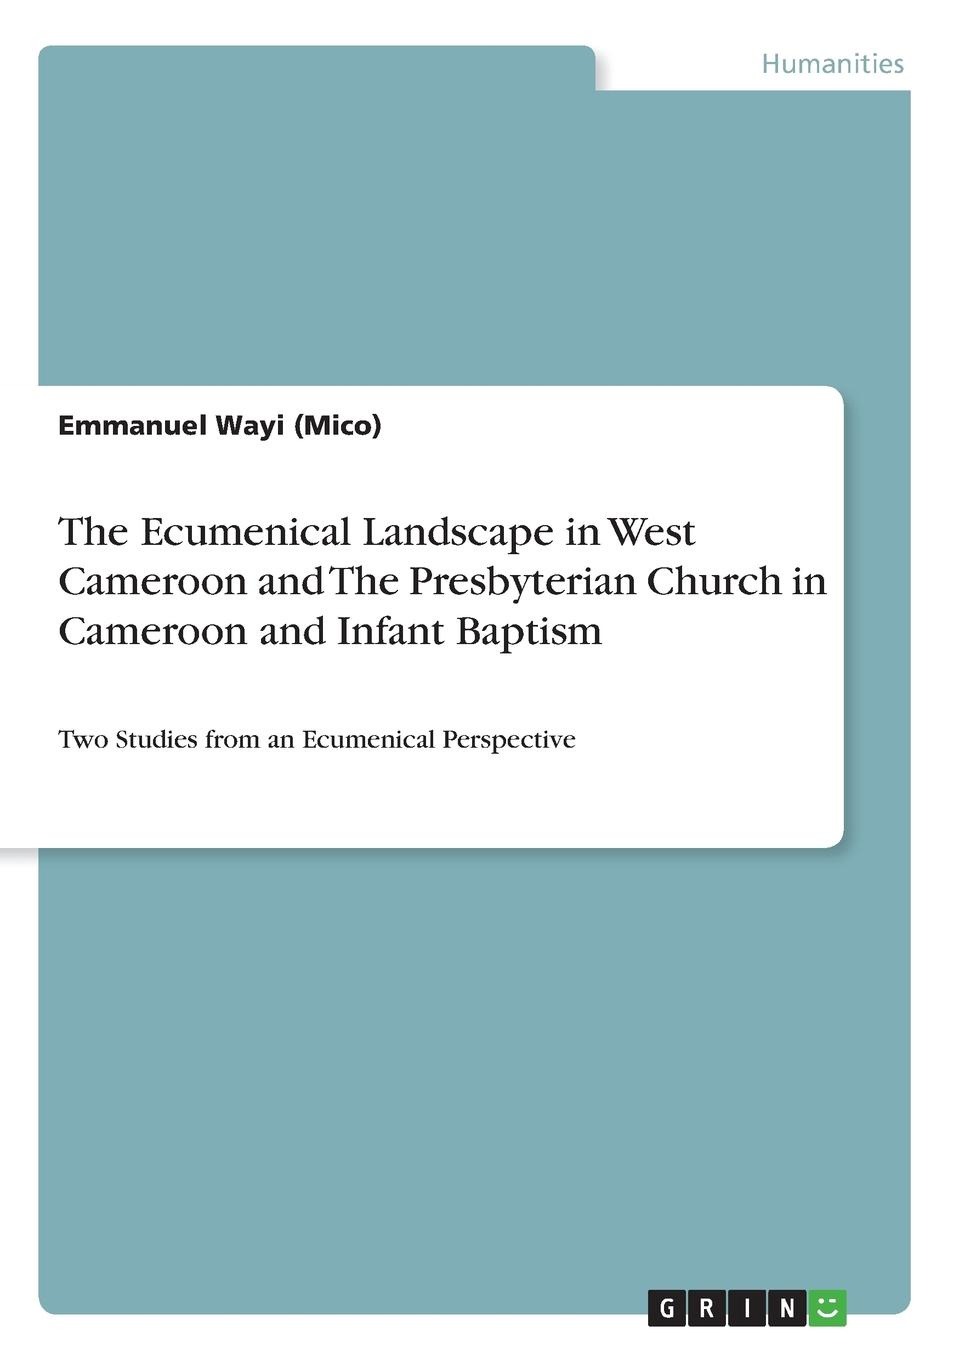 Emmanuel Wayi (Mico) The Ecumenical Landscape in West Cameroon and The Presbyterian Church in Cameroon and Infant Baptism police corruption in cameroon and uganda